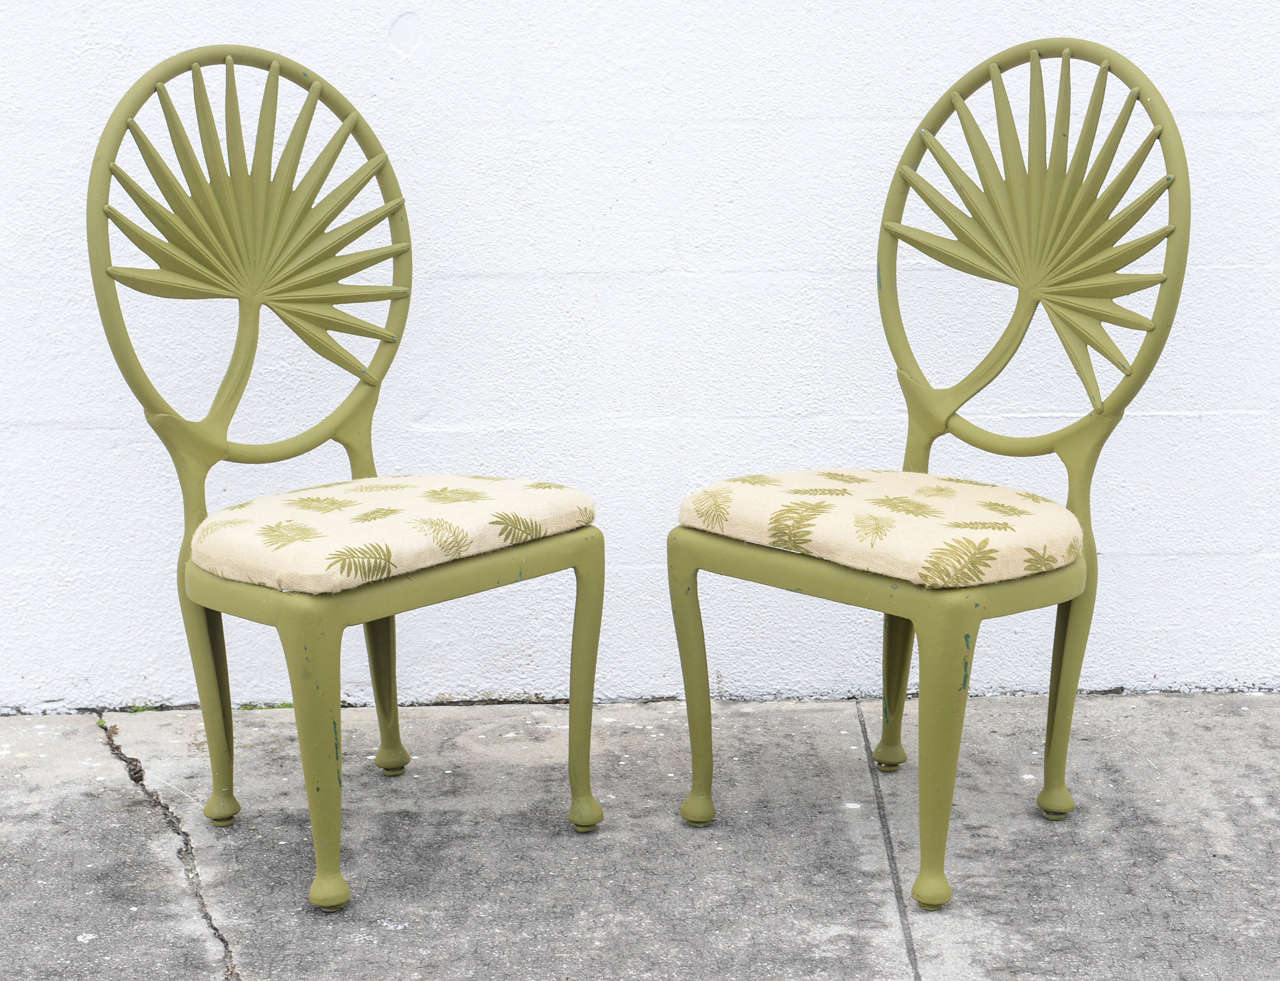 Aluminum Palm Frond Patio Chairs, Set Of Six At 1stdibs